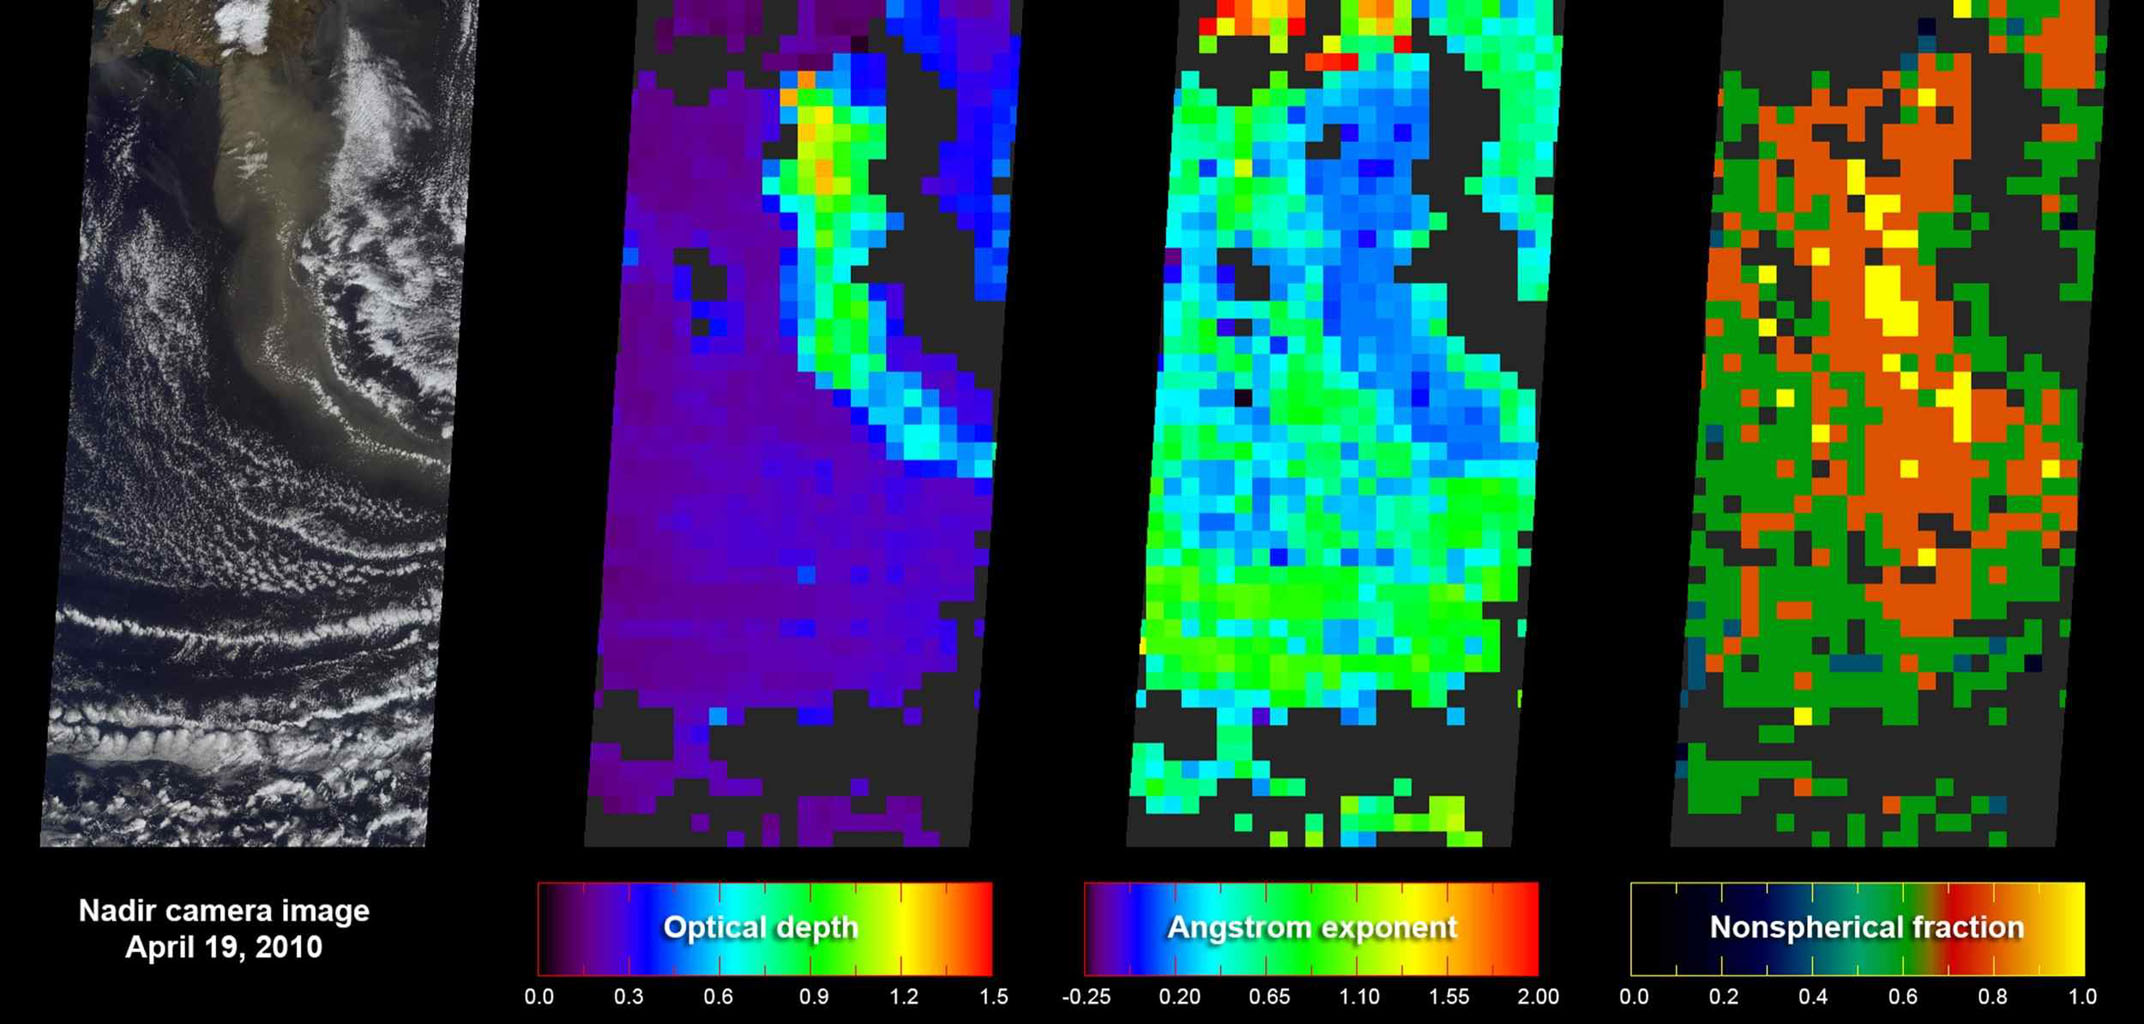 As NASA's Terra satellite flew over Iceland's erupting Eyjafjallajökull volcano, its Multi-angle Imaging SpectroRadiometer instrument acquired 36 near-simultaneous images of the ash plume, covering nine view angles in each of four wavelengths.